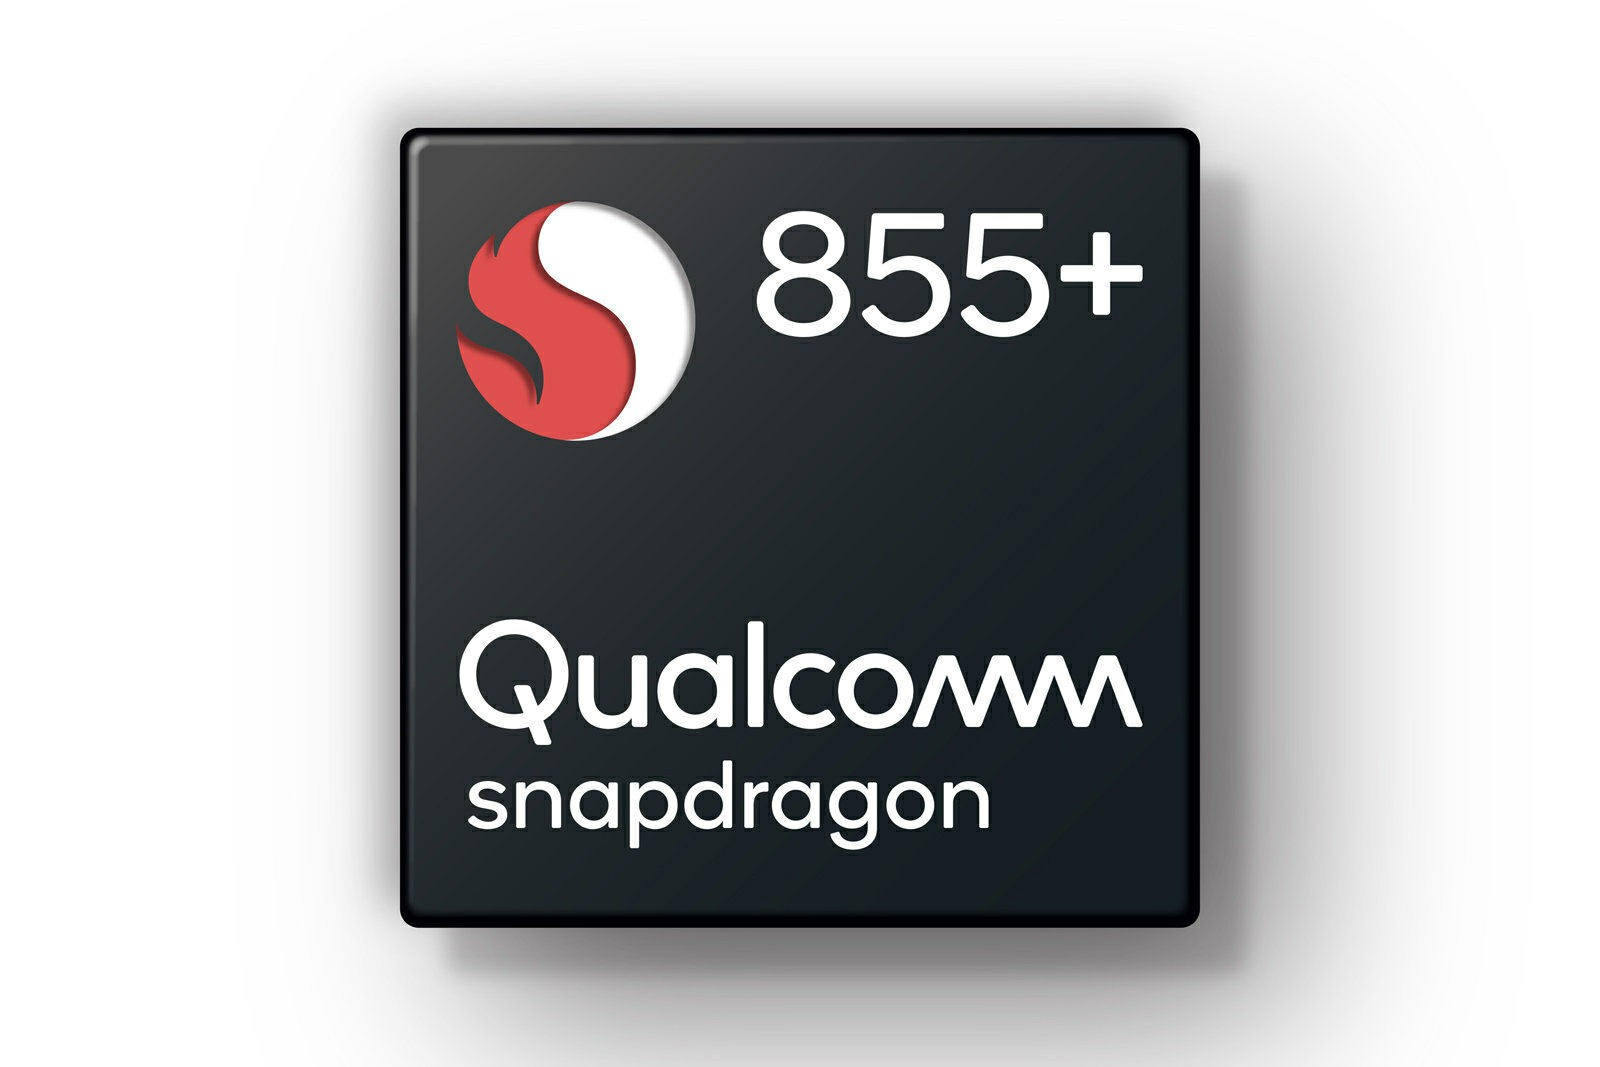 Qualcomm Snapdragon 855 Plus, Qualcomm Snapdragon 855+